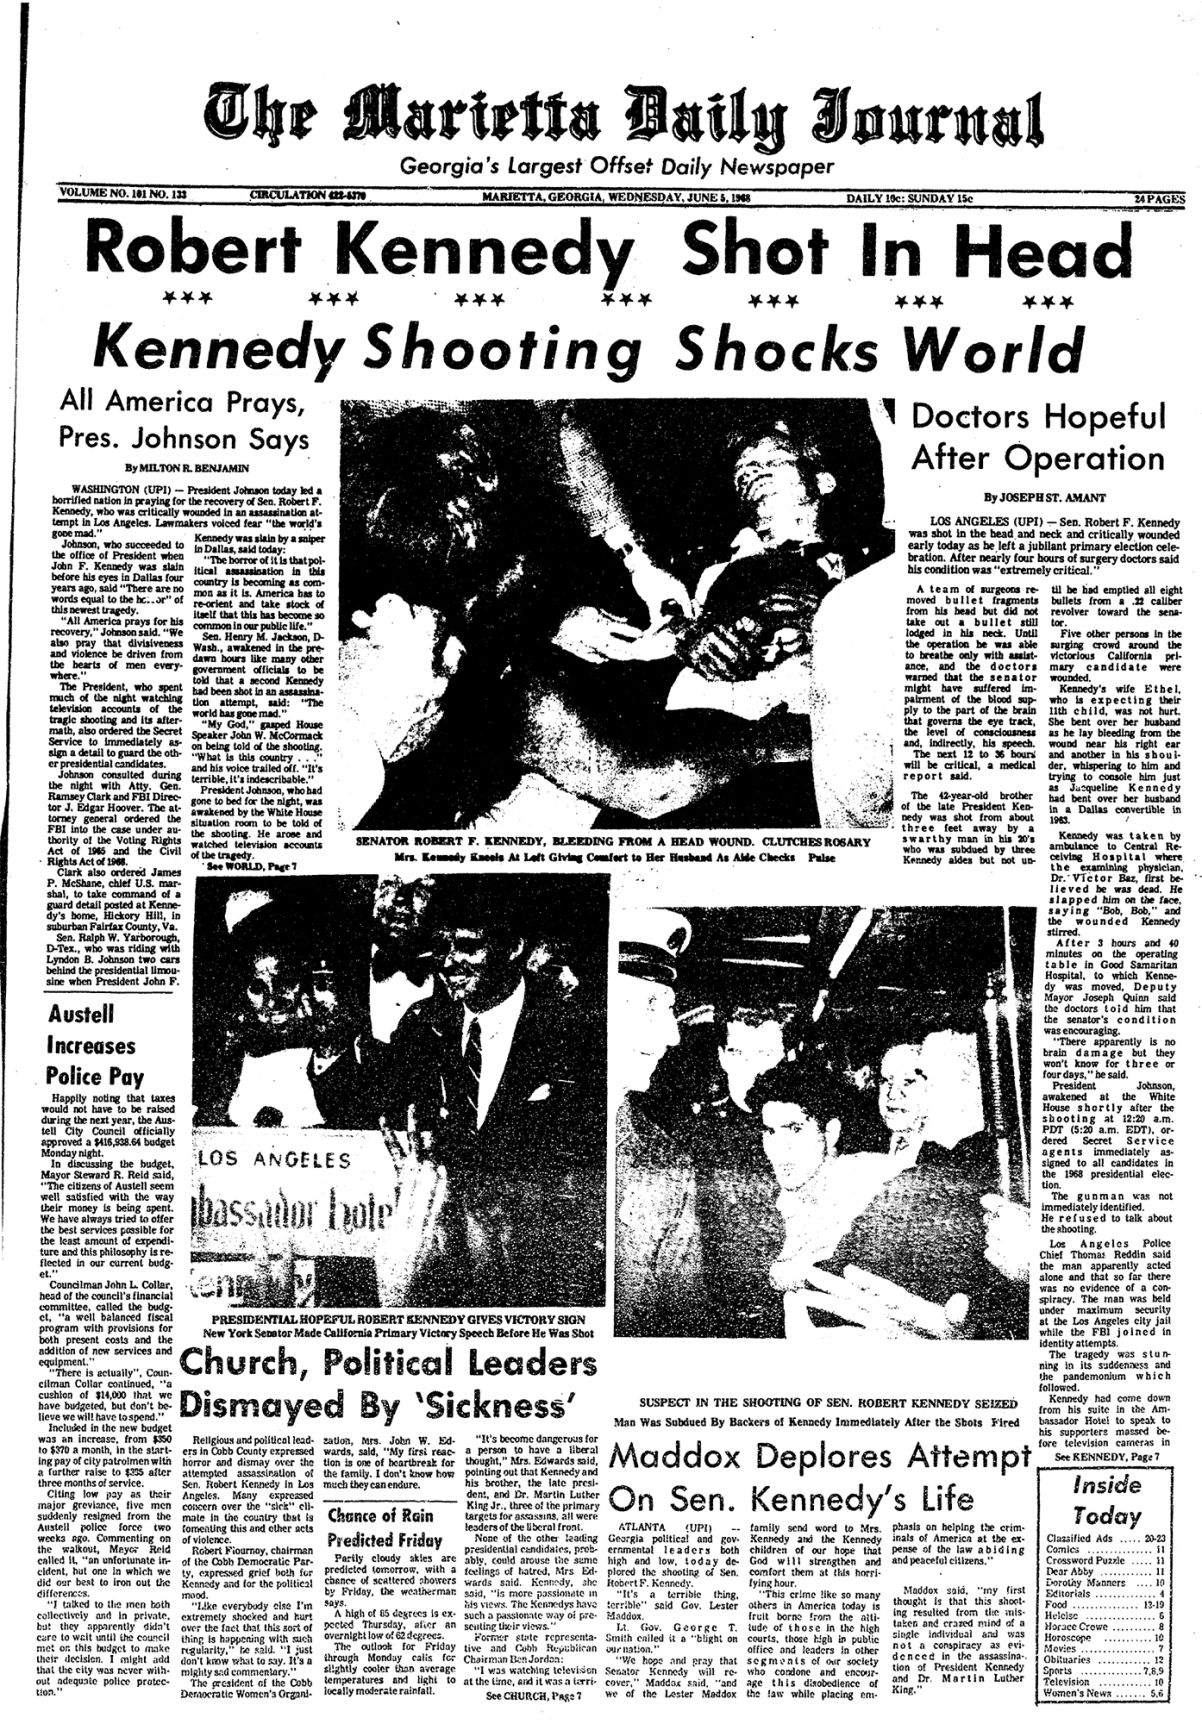 June 5, 1968 Page A1 Front - Time Capsule.jpg